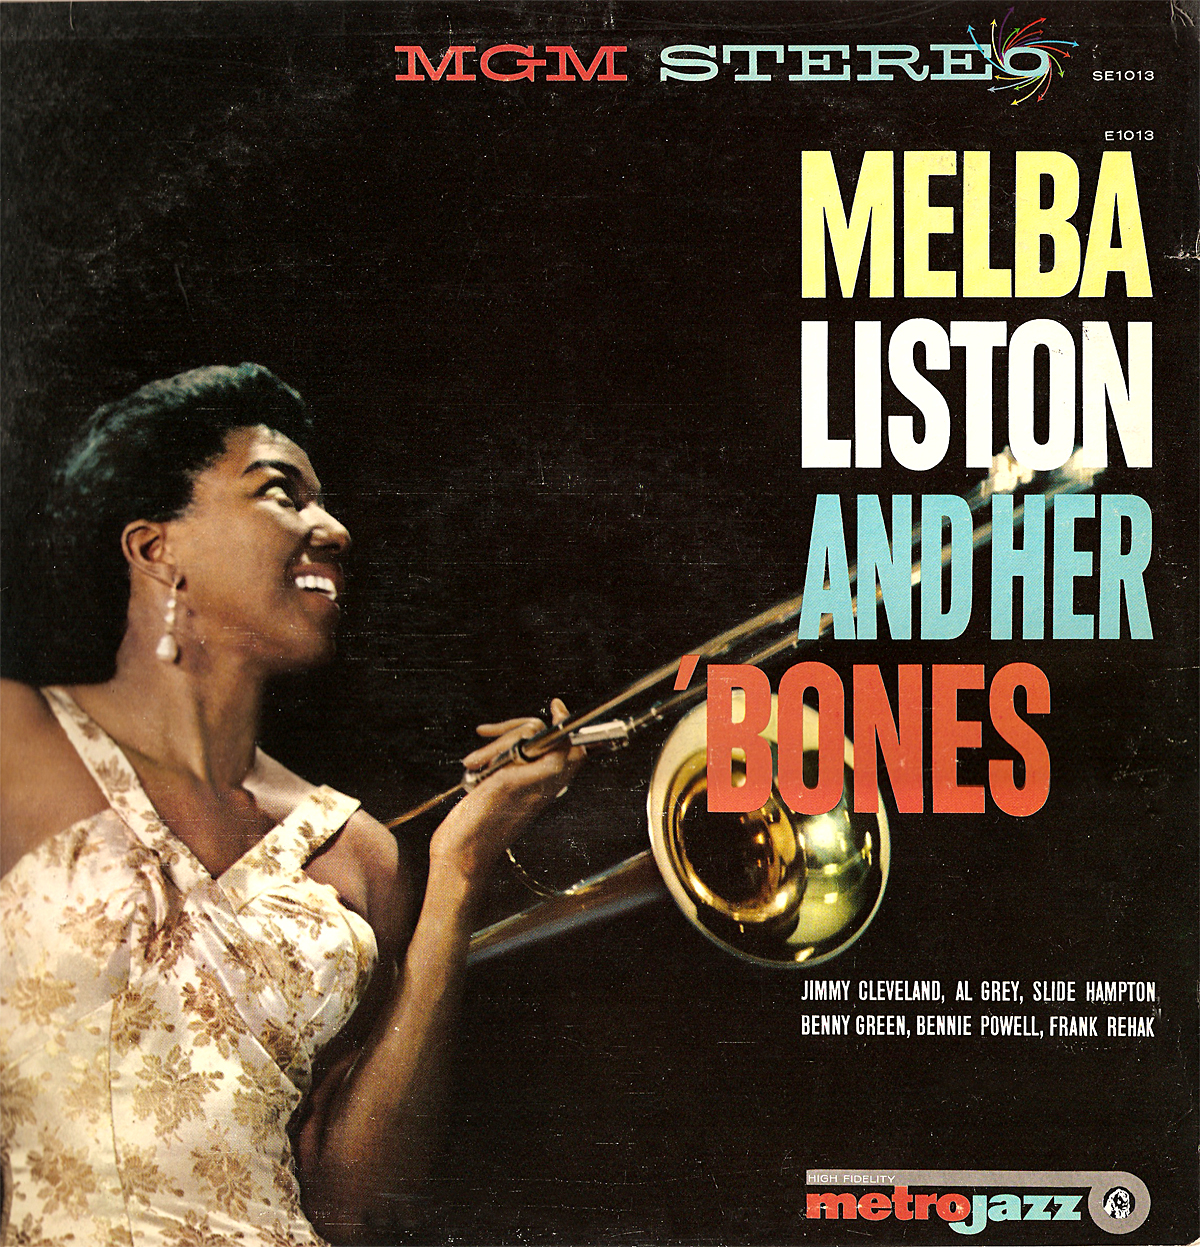 melba liston - melba liston and her bones (sleeve art)